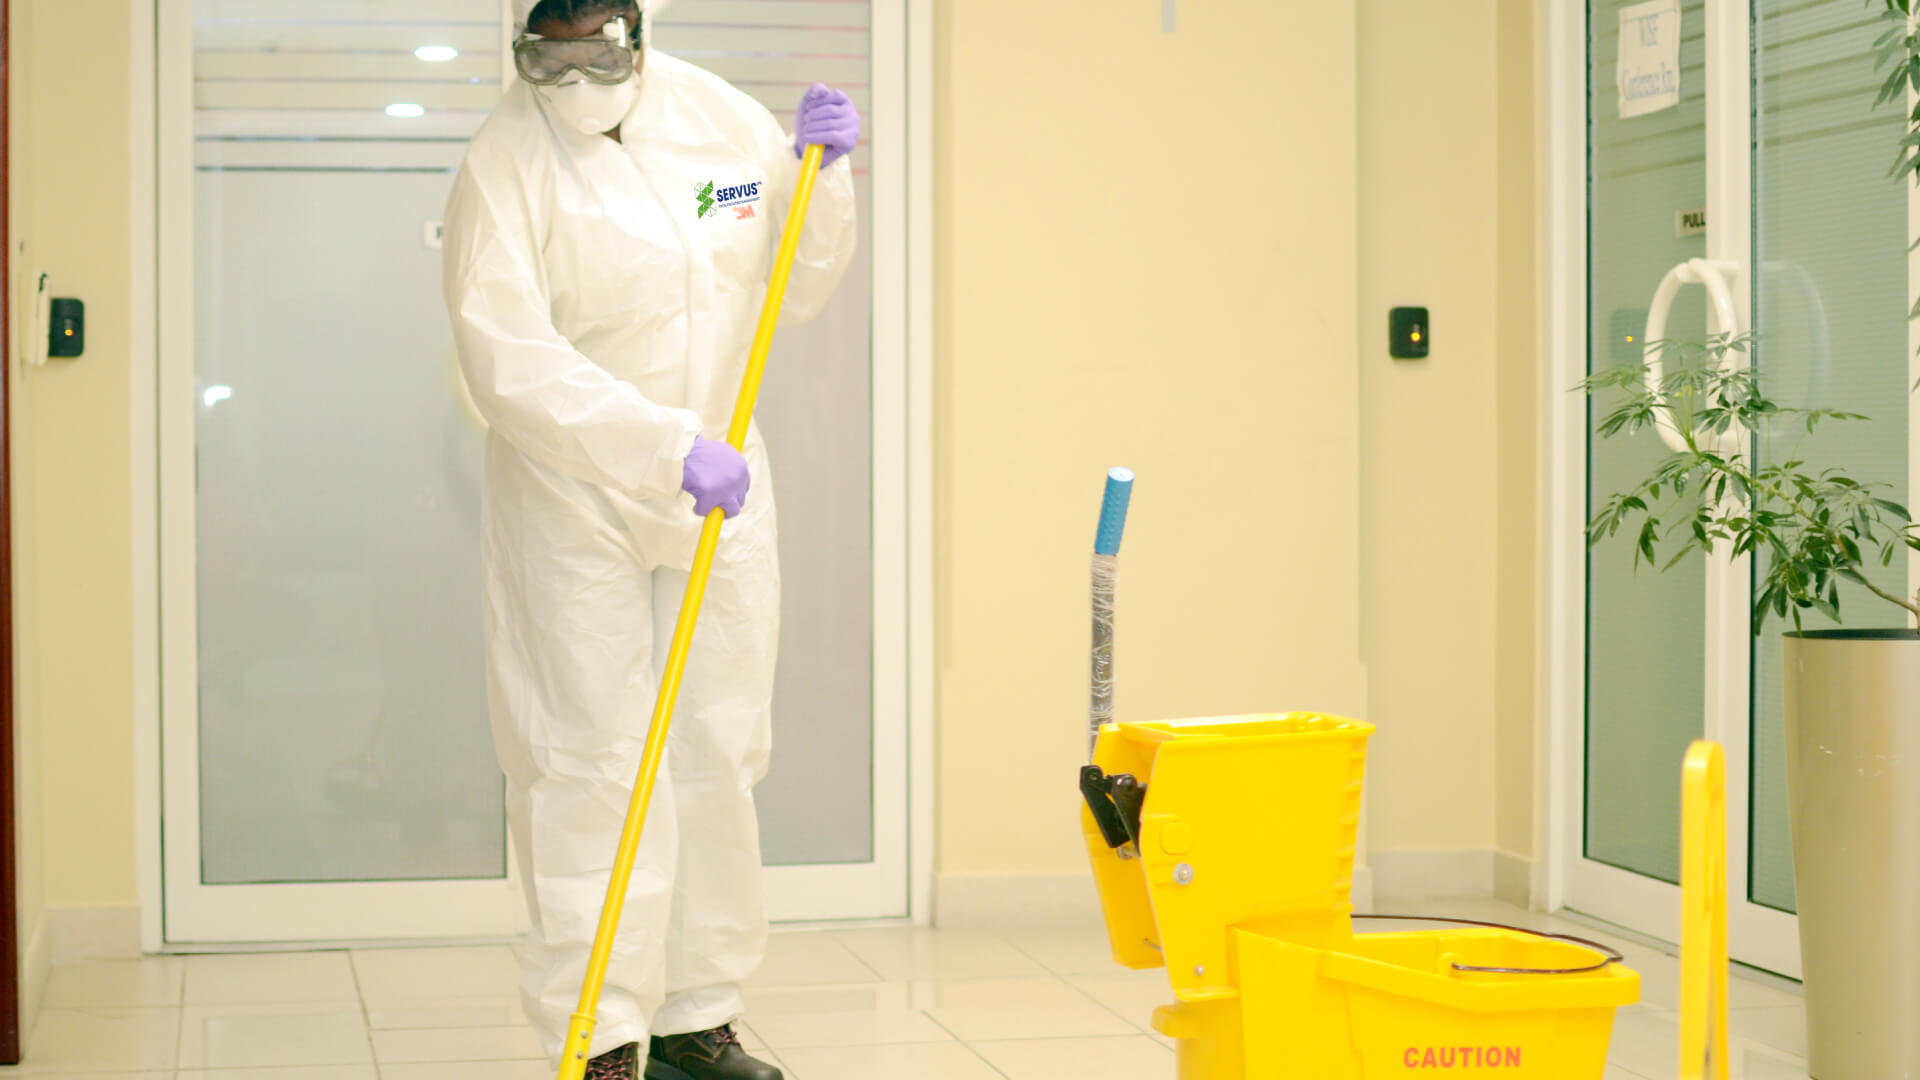 Disinfection-&-Sanitizing-Services-Gfx-Gallery-2